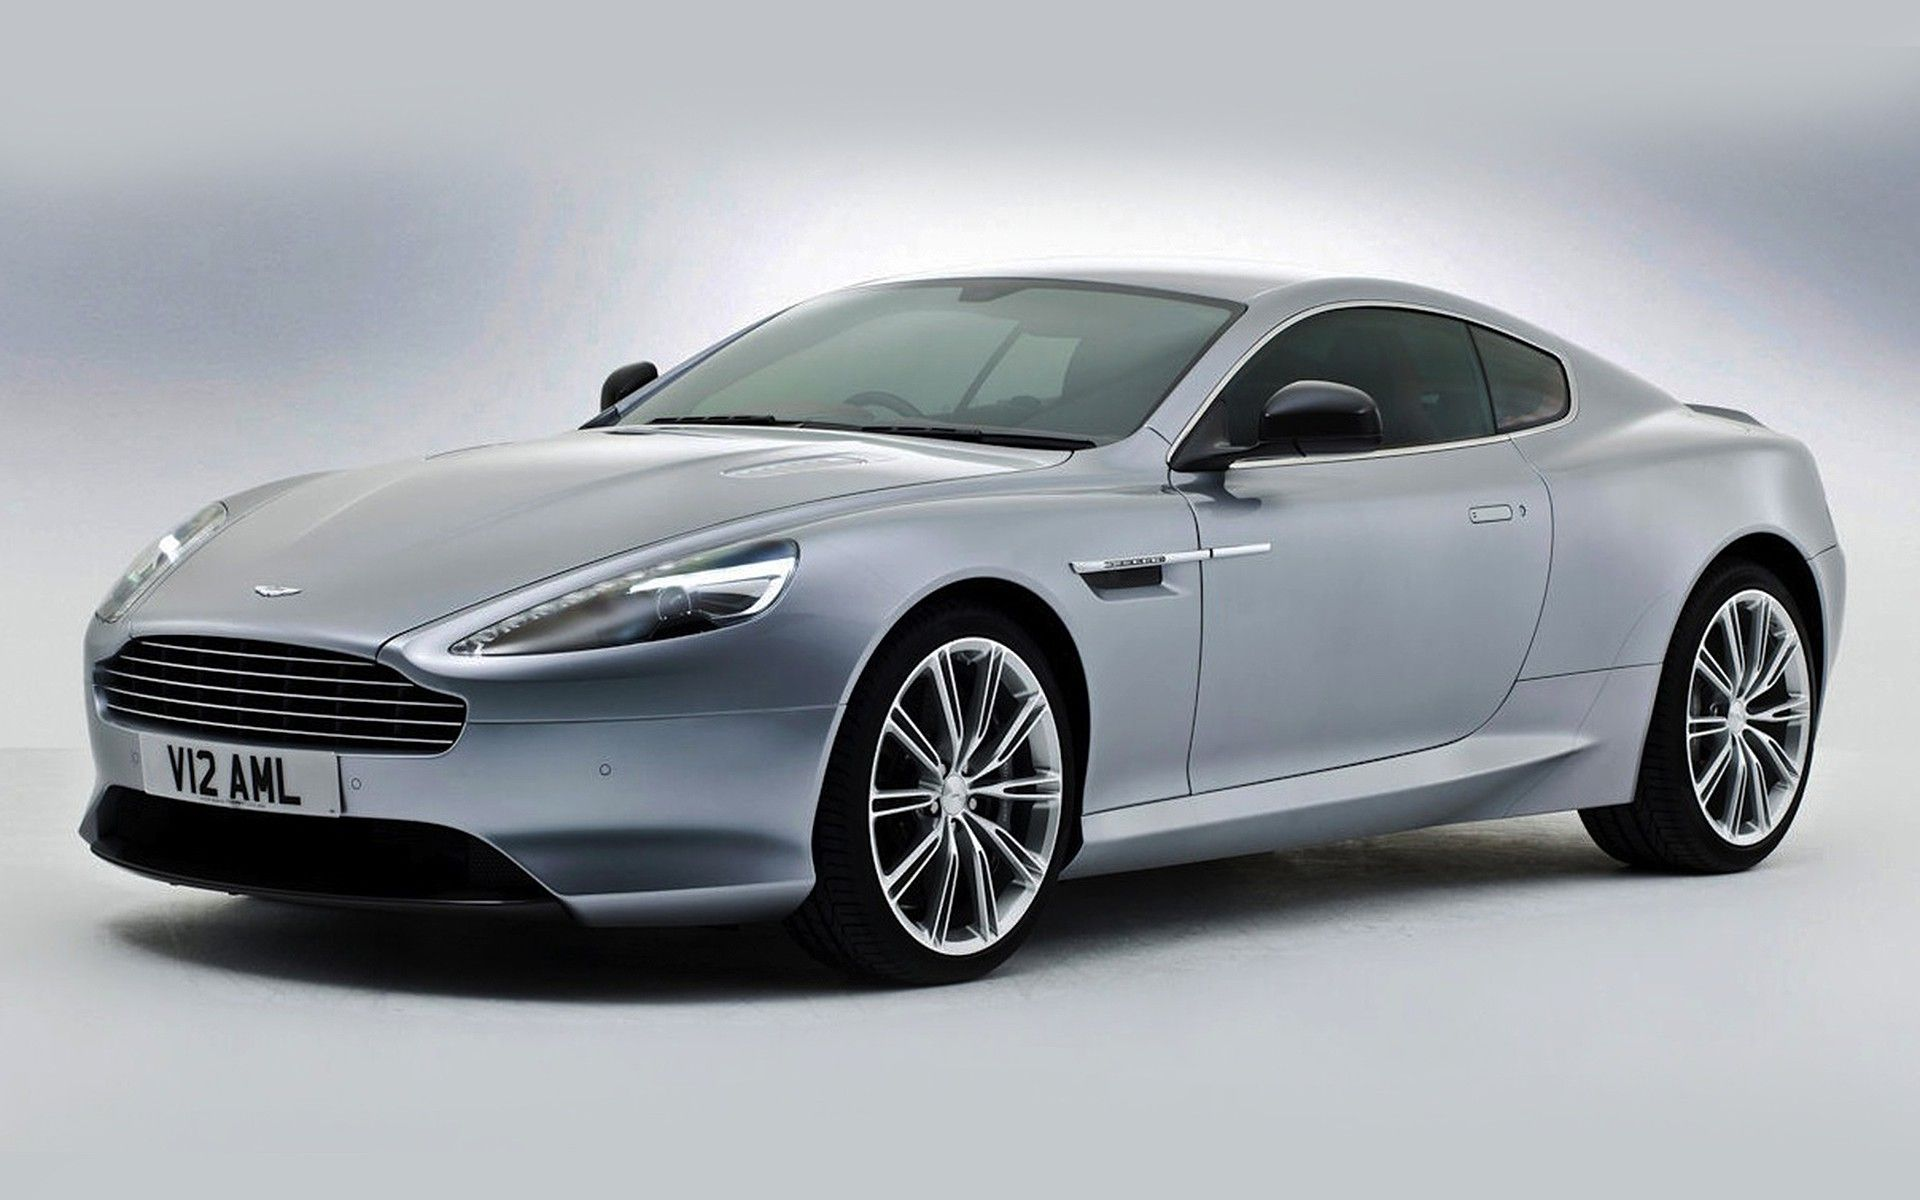 Free Download Astonmartin New Db9 Full Hd Car Images Photos